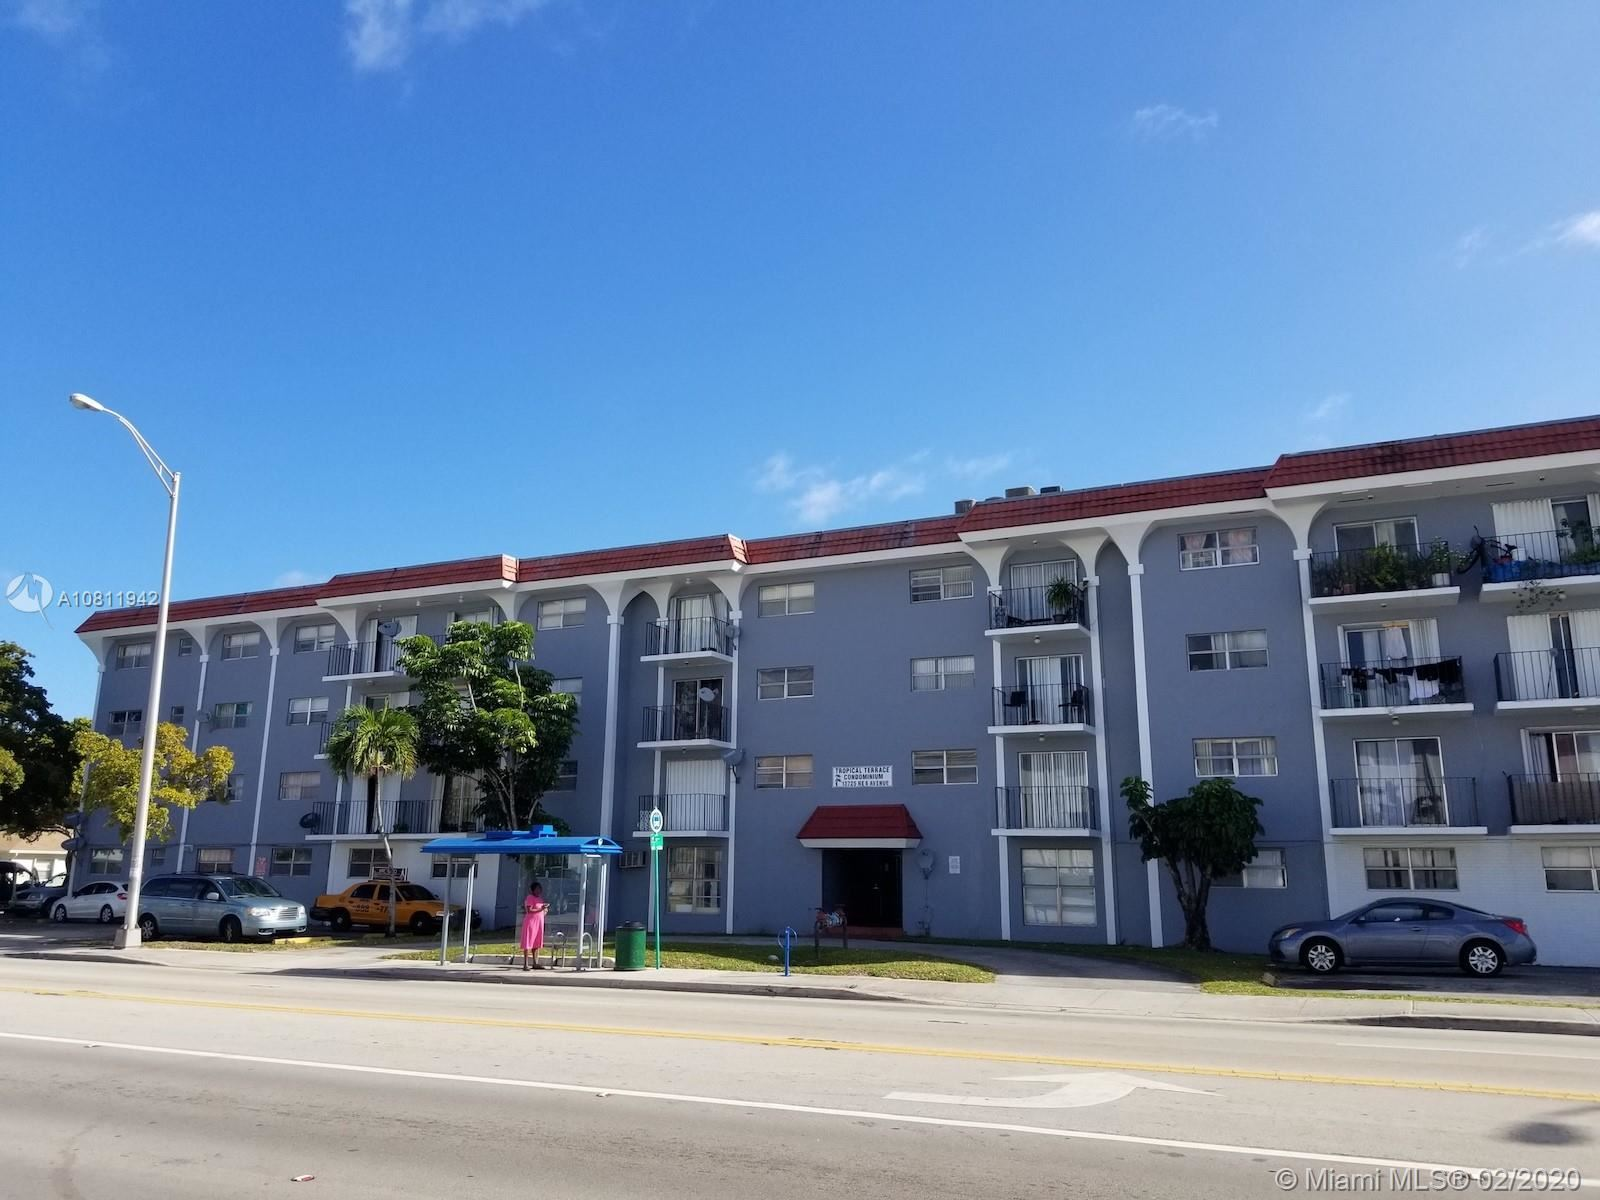 13725 NE 6th Ave #404, North Miami, FL 33161 - #: A10811942